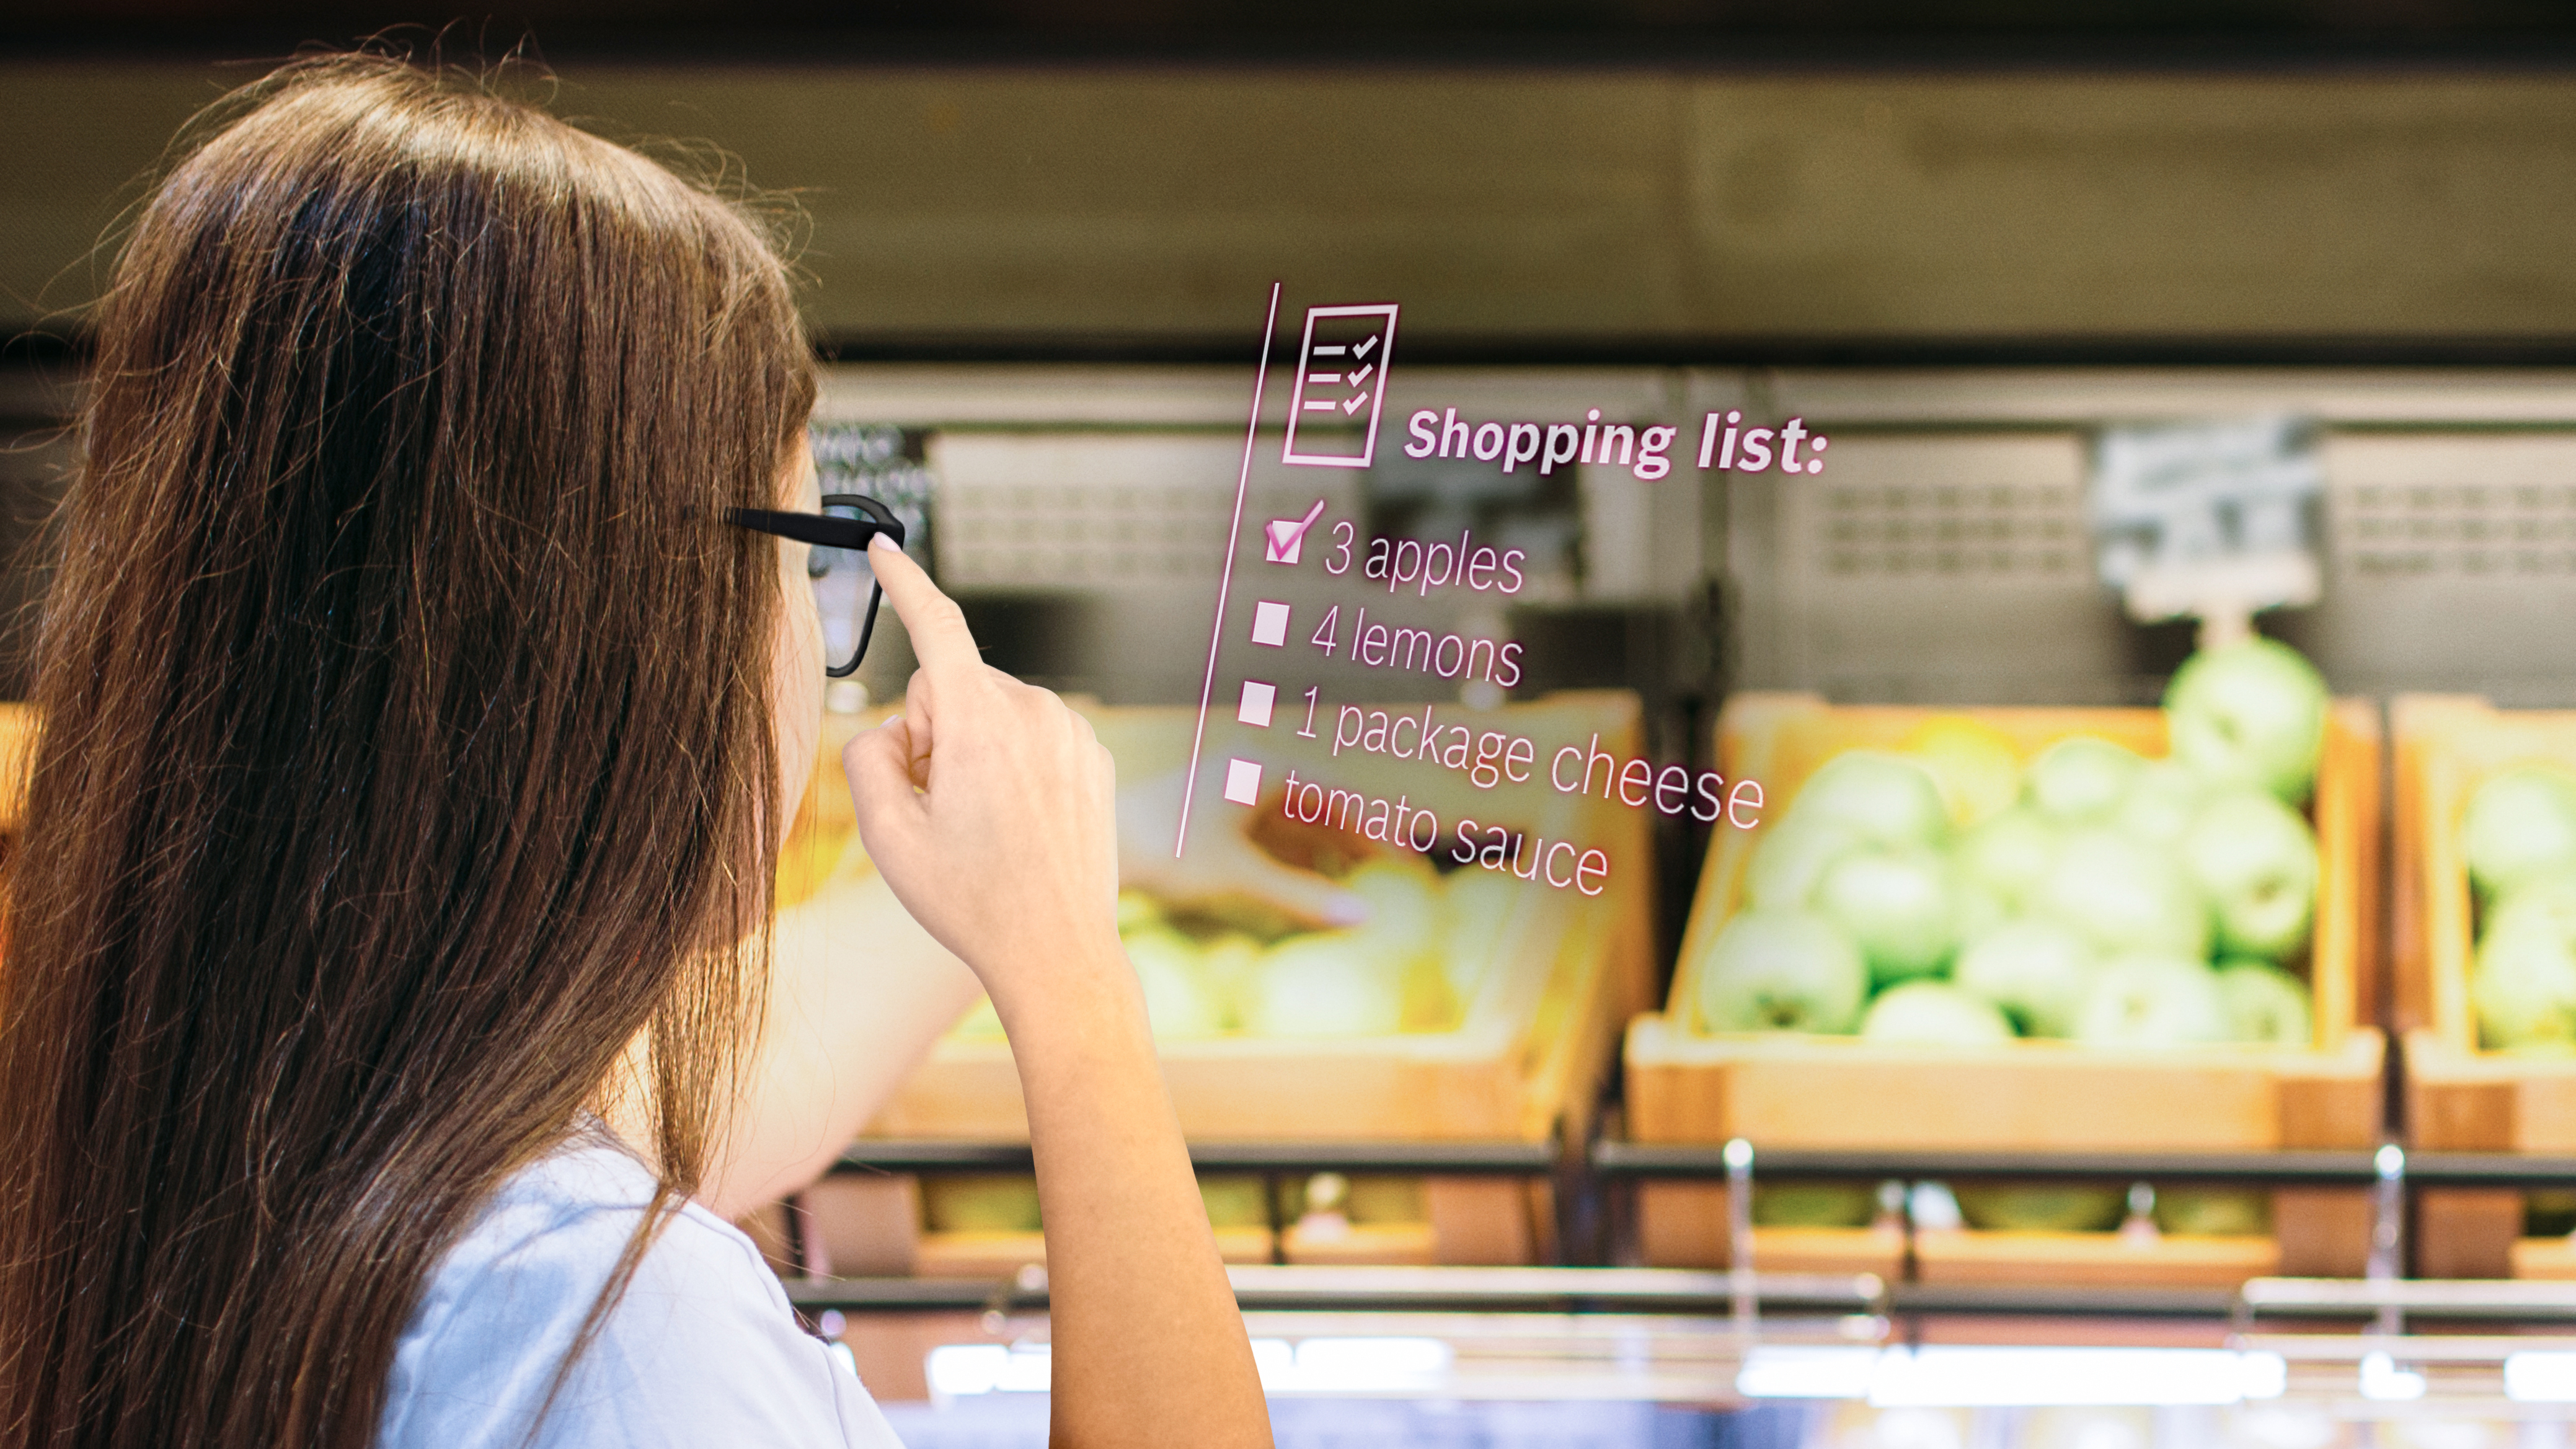 Smartglasses as assistants in the everyday life